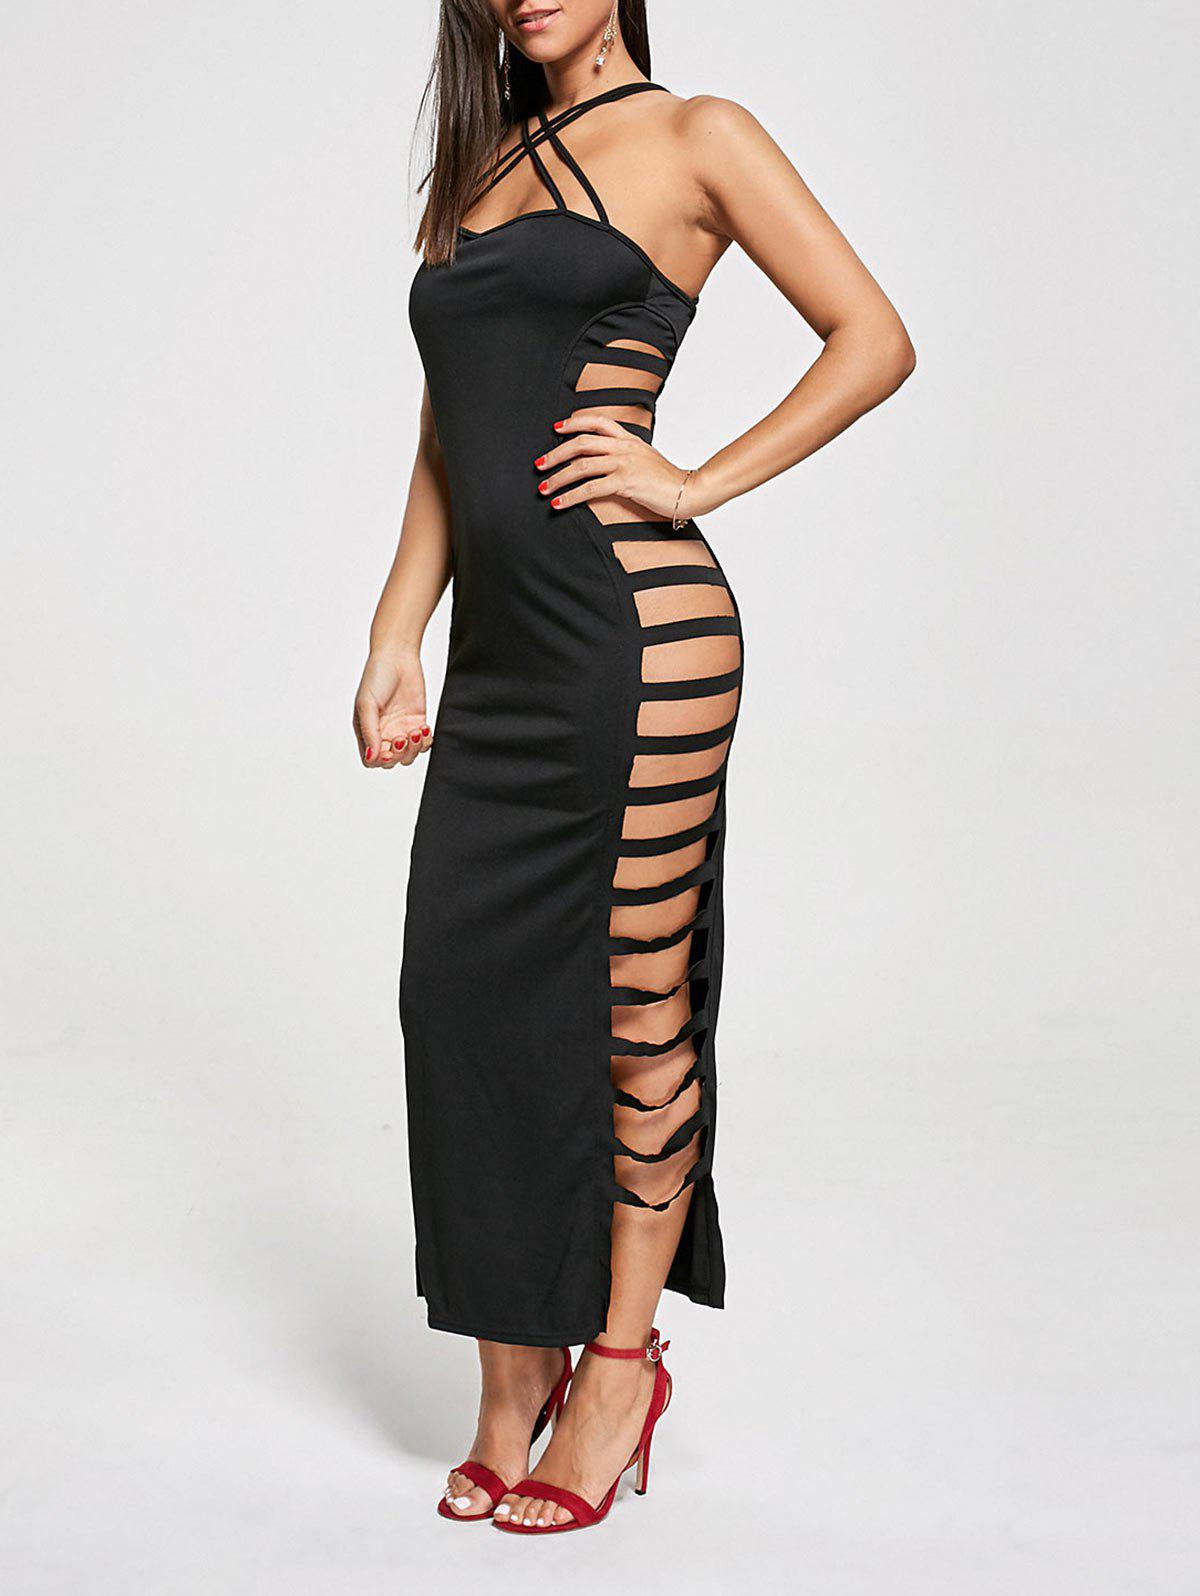 Sexy Cut Out Criss Cross Club Dress - Noir M